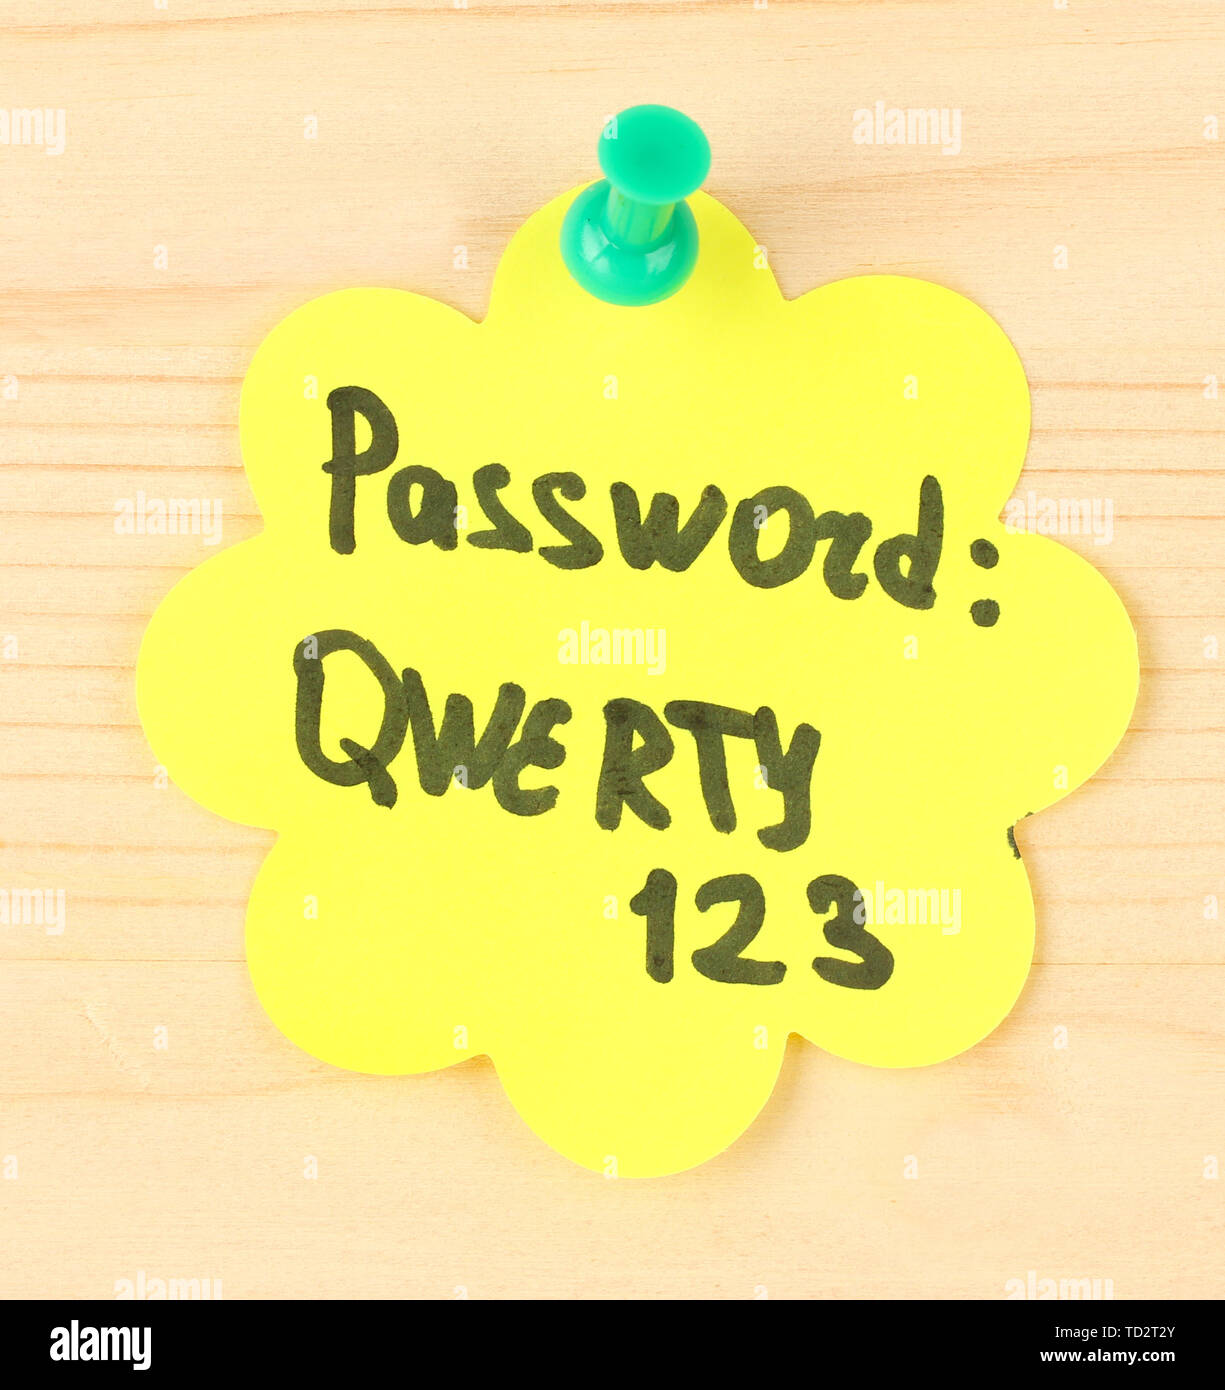 Sticker-reminder with most popular password, on wooden background - Stock Image